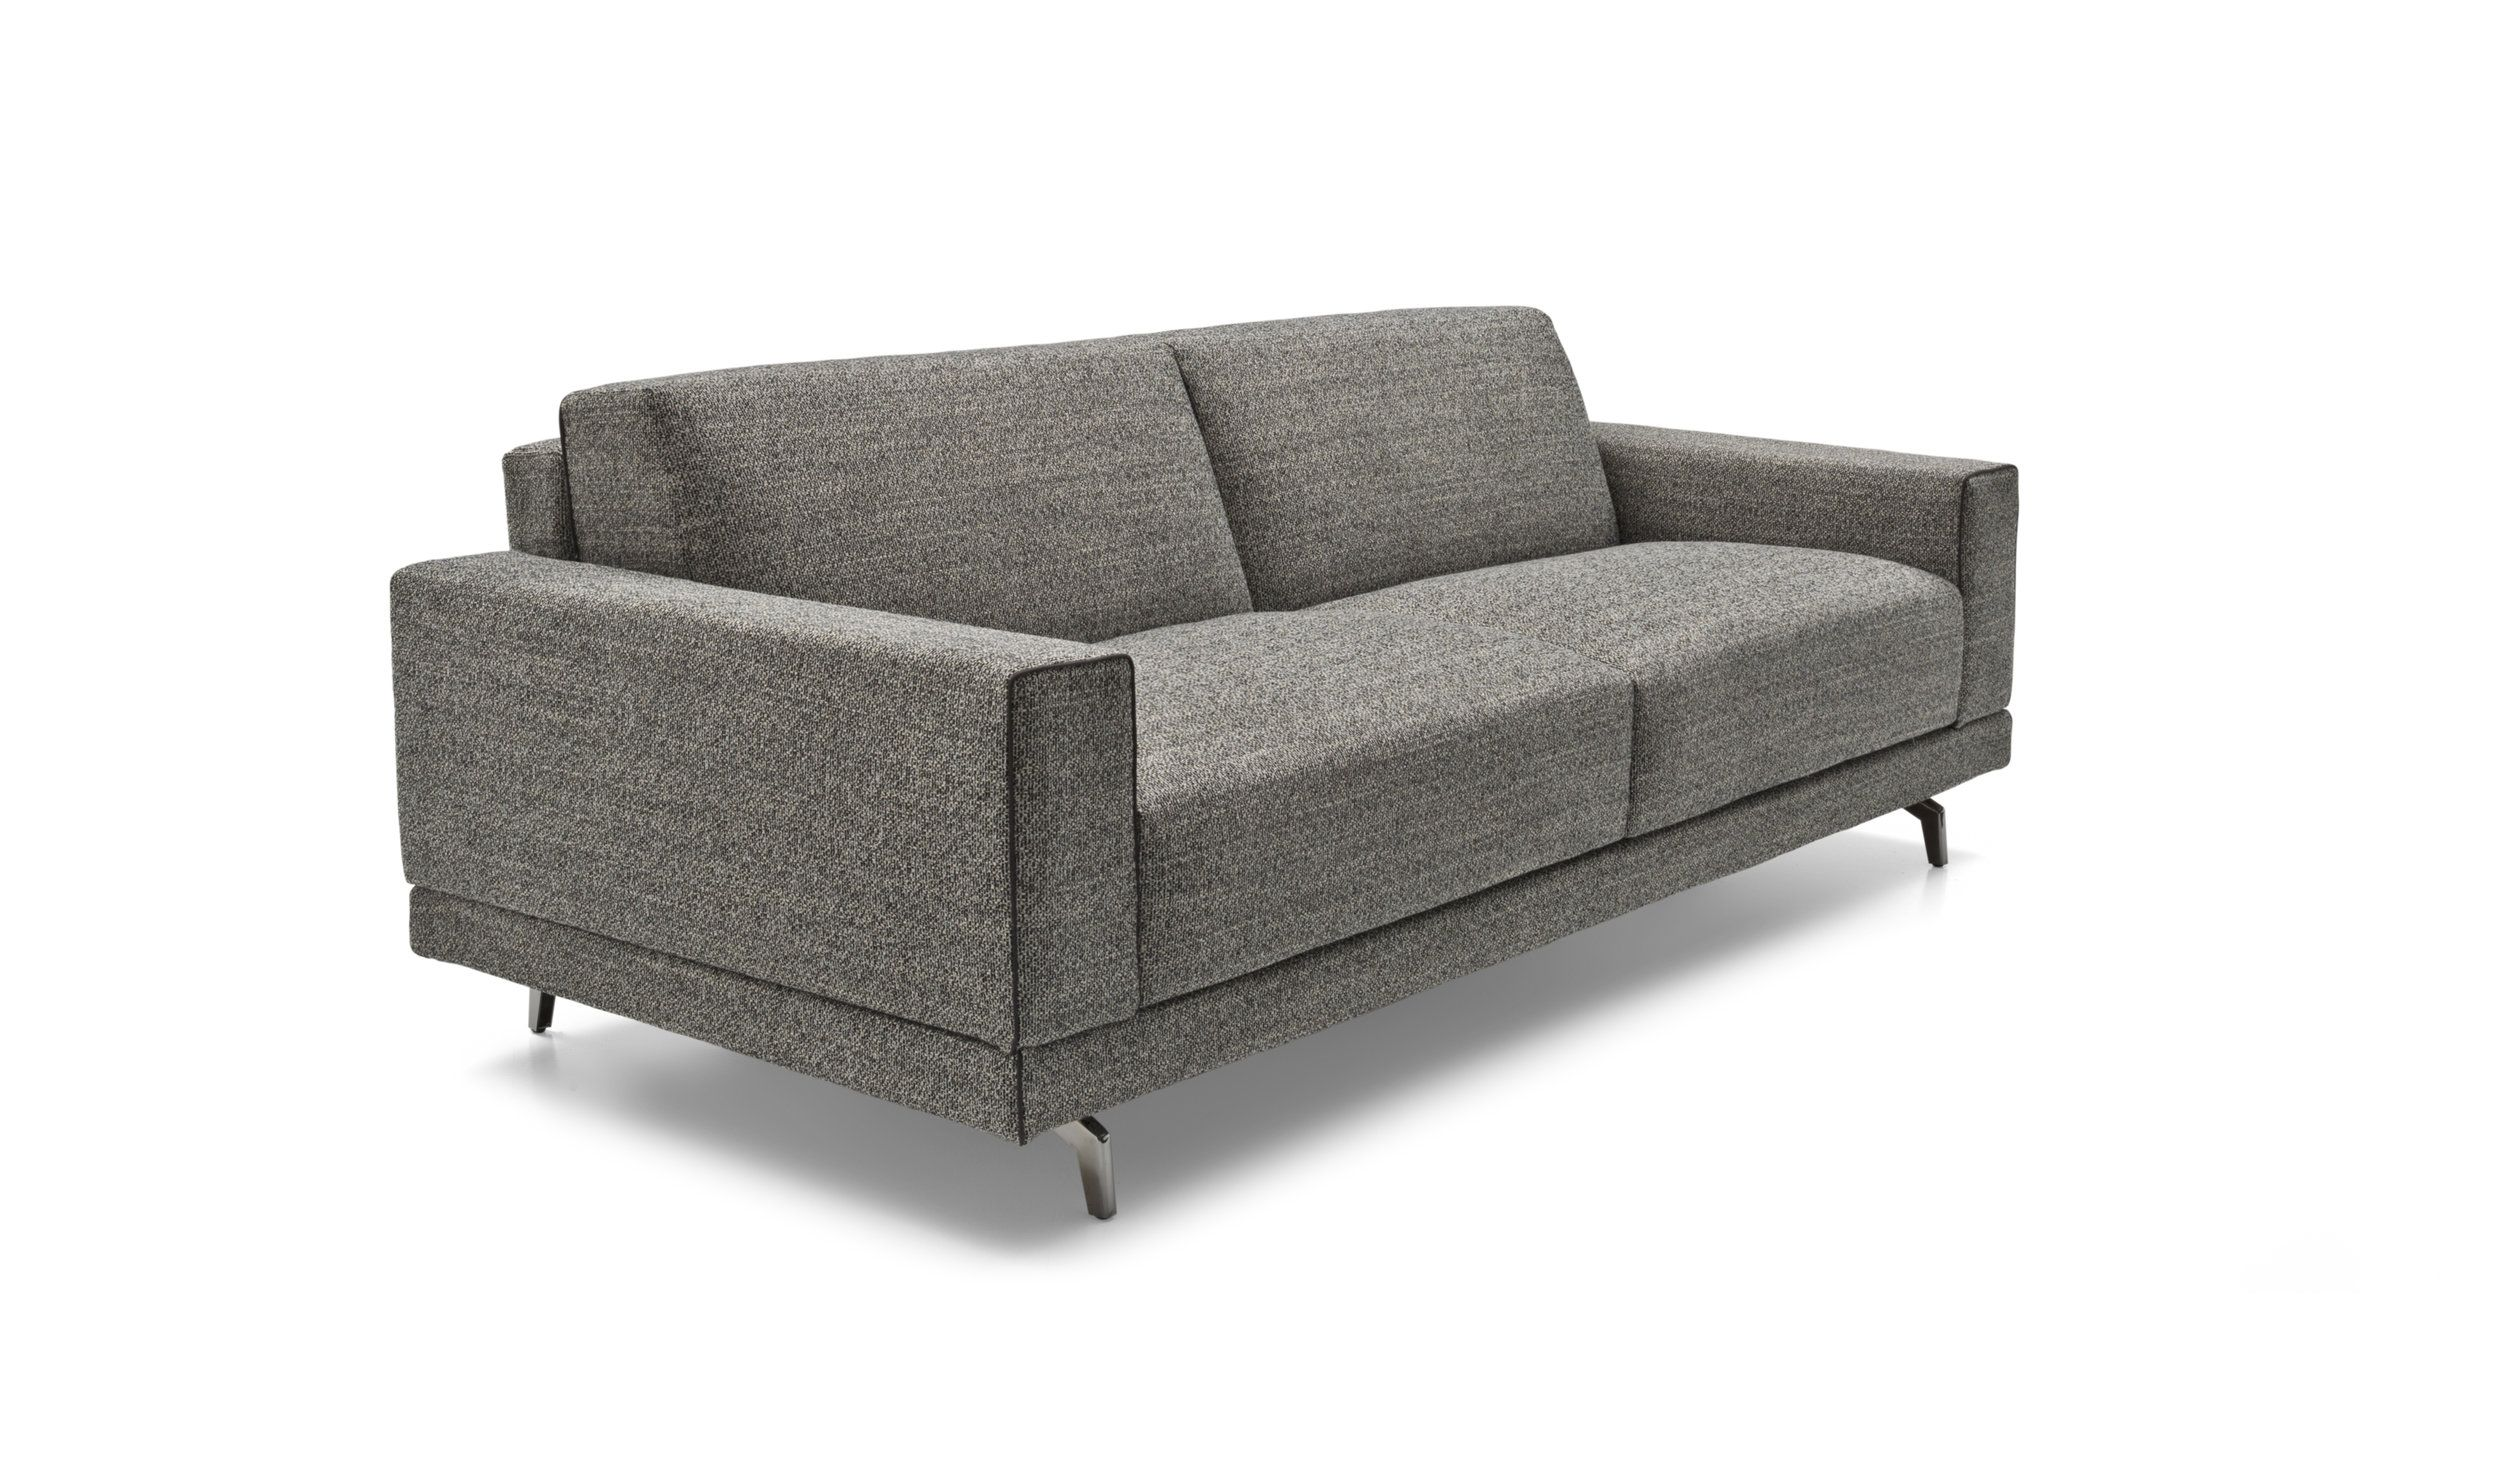 Italian Modern Sofa Beds | Modern Italian Furniture | Sofa ...